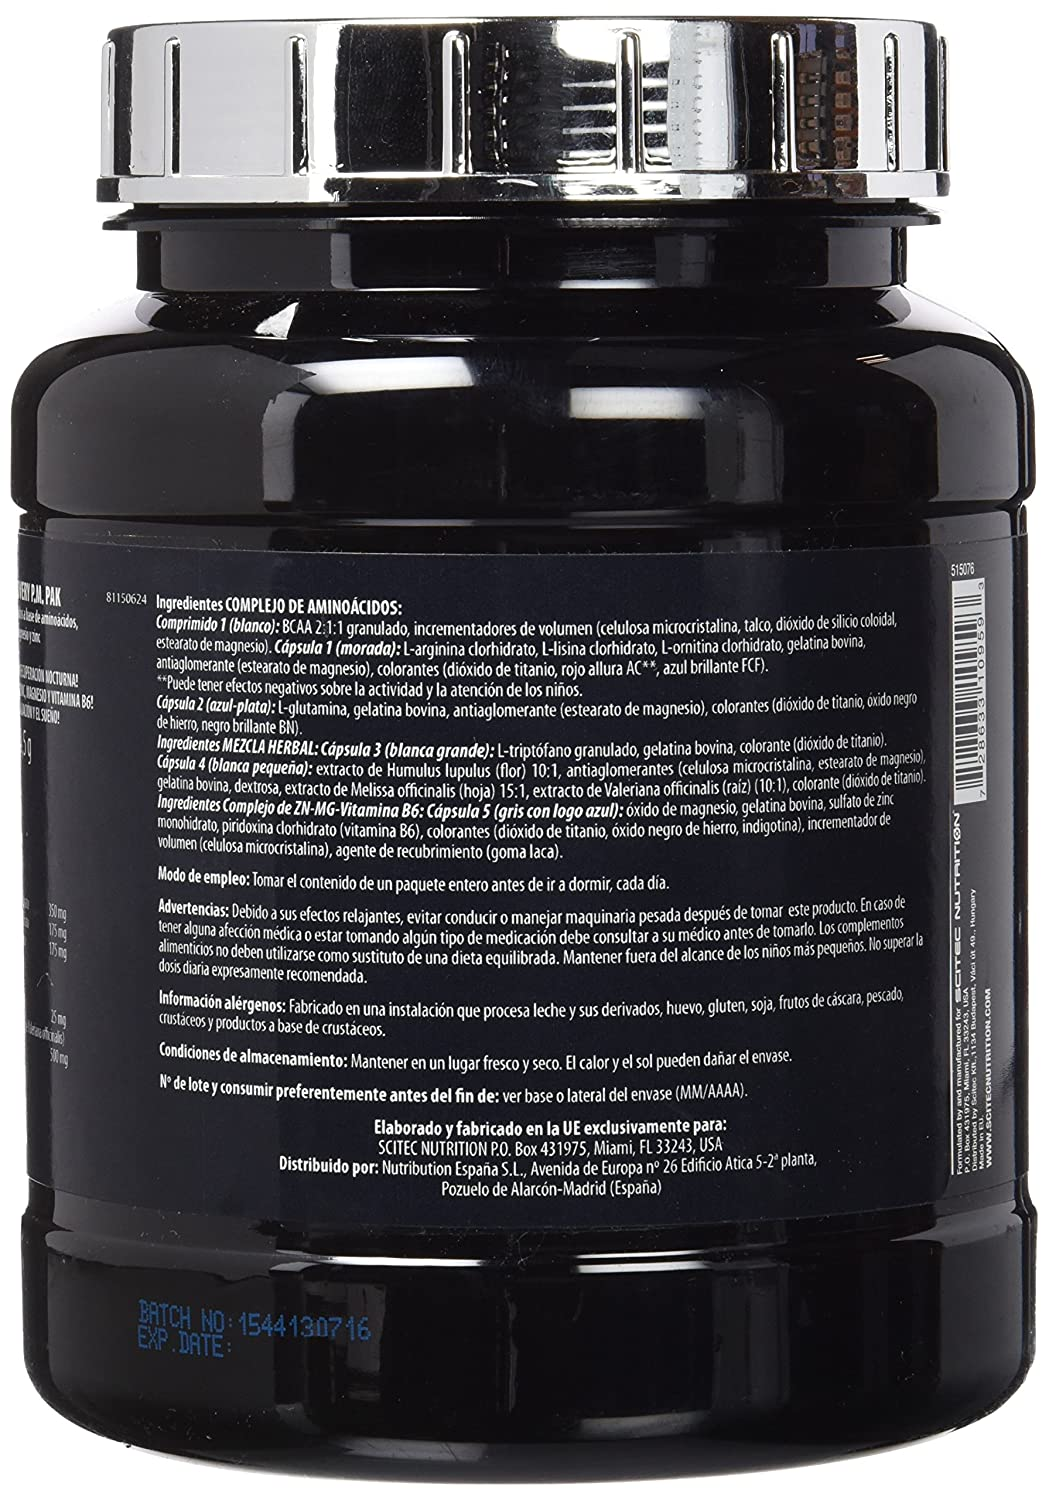 Amazon.com: SCITEC 106844 Pre Bed Nutrient And Support by Scitec: Health & Personal Care